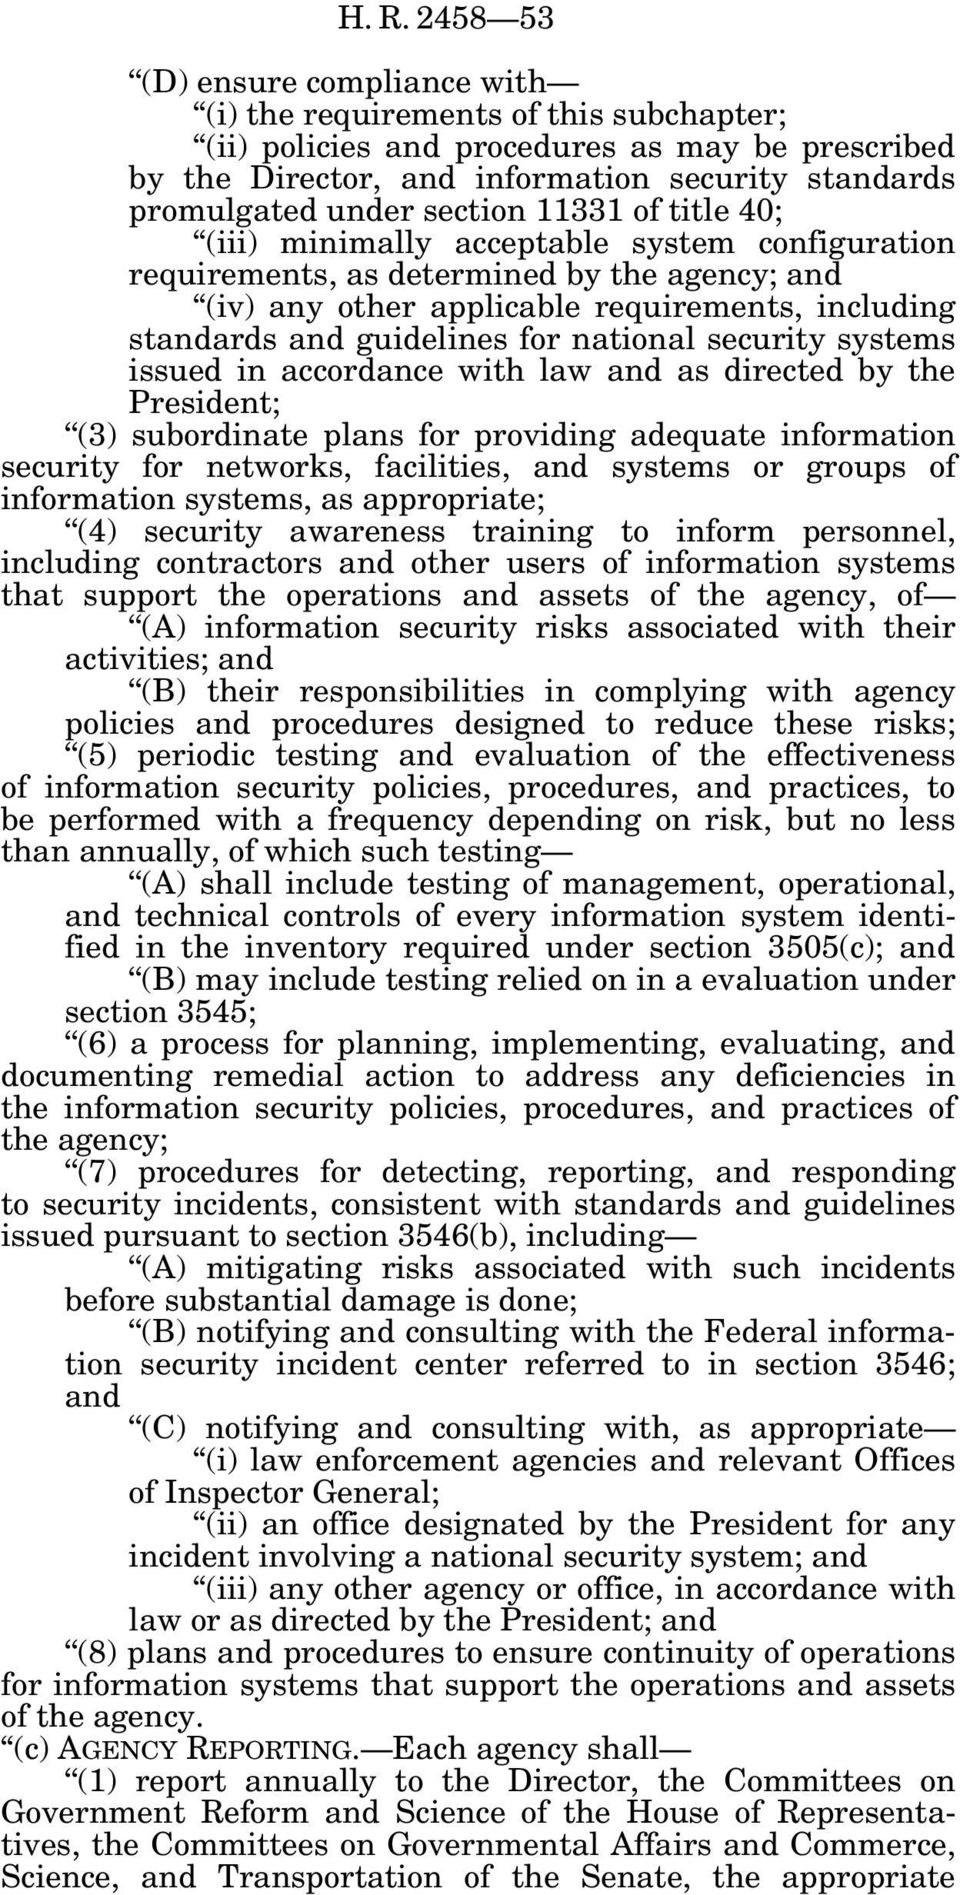 guidelines for national security systems issued in accordance with law and as directed by the President; (3) subordinate plans for providing adequate information security for networks, facilities,